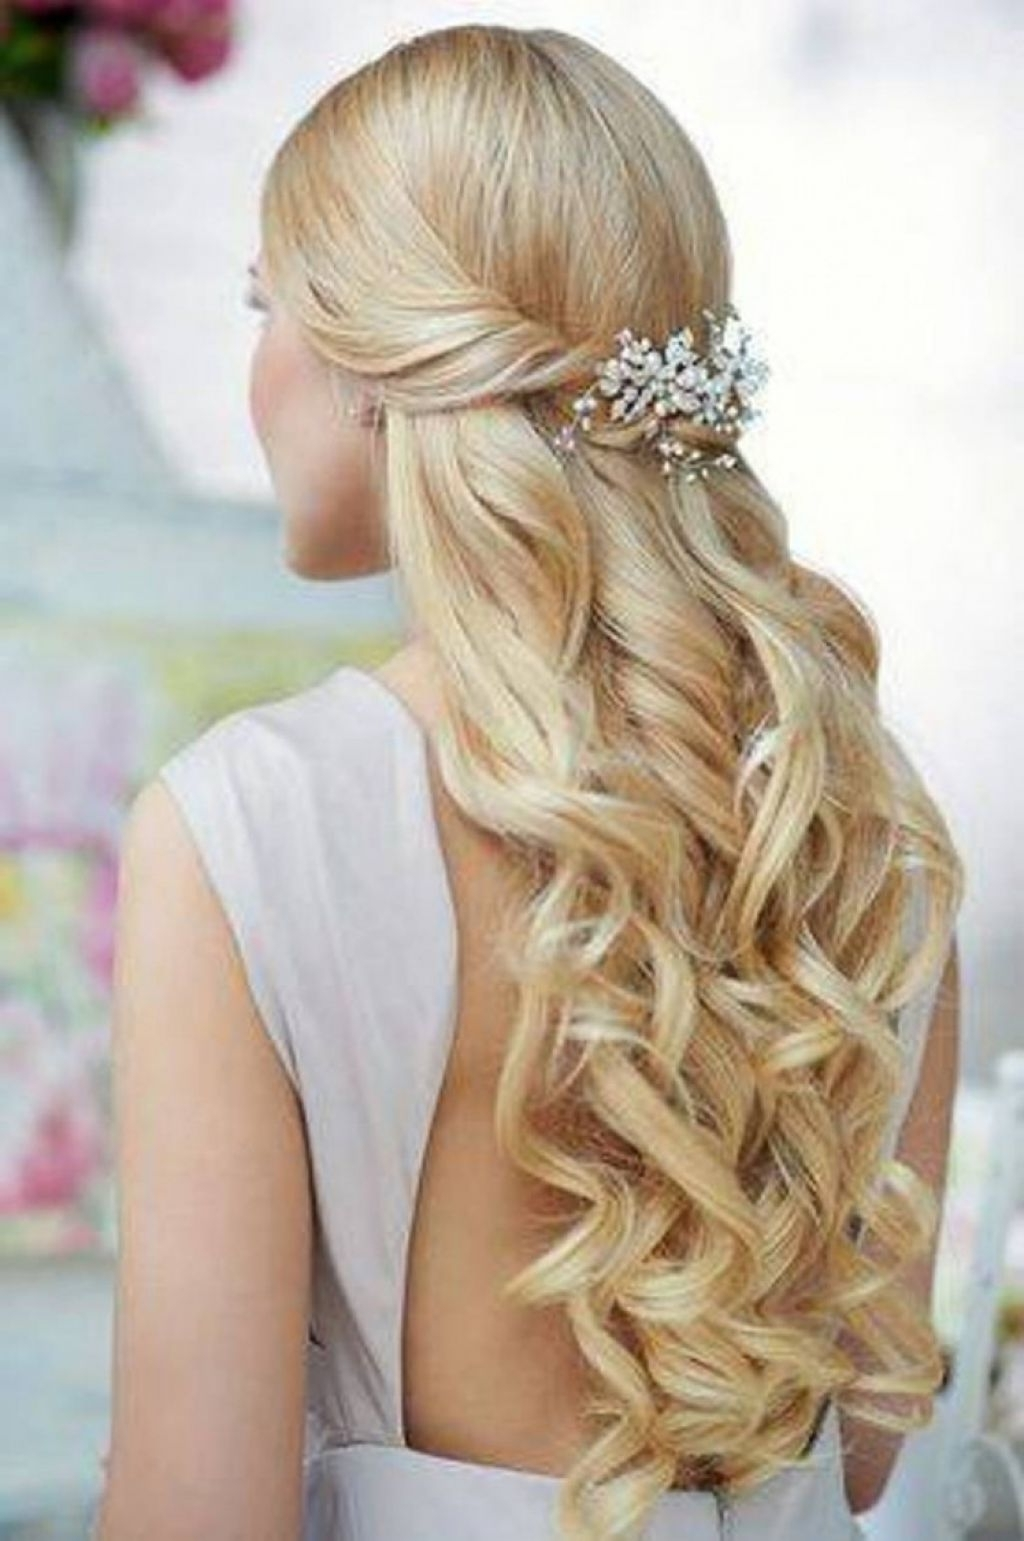 √ 24+ Awesome Wedding Hairstyles For Long Hair Half Up: Bridesmaid Pertaining To Recent Half Up Wedding Hairstyles For Long Hair (View 1 of 15)